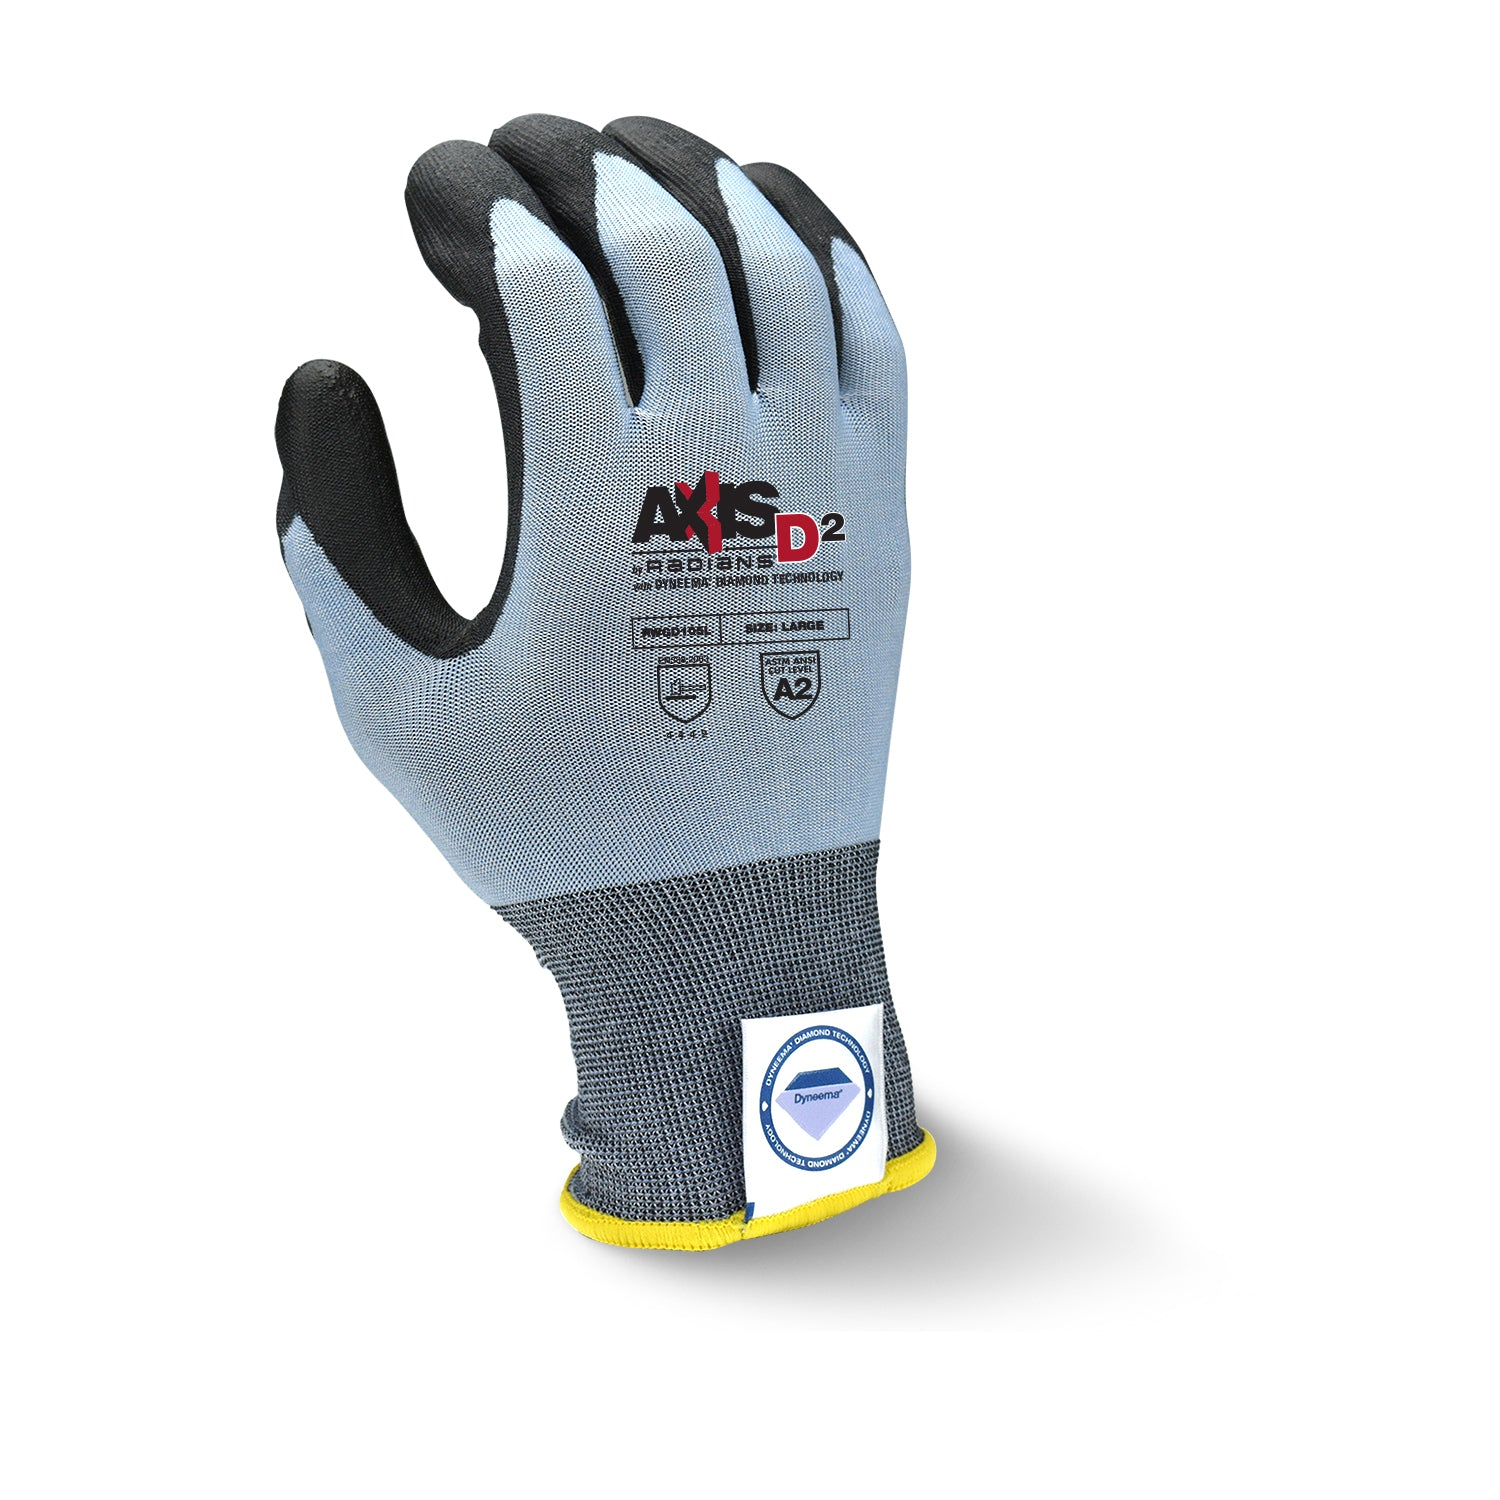 RADIANS RWGD105 AXIS D2™CUT PROTECTION LEVEL A2 GLOVE WITH DYNEEMA® DIAMOND TECHNOLOGY